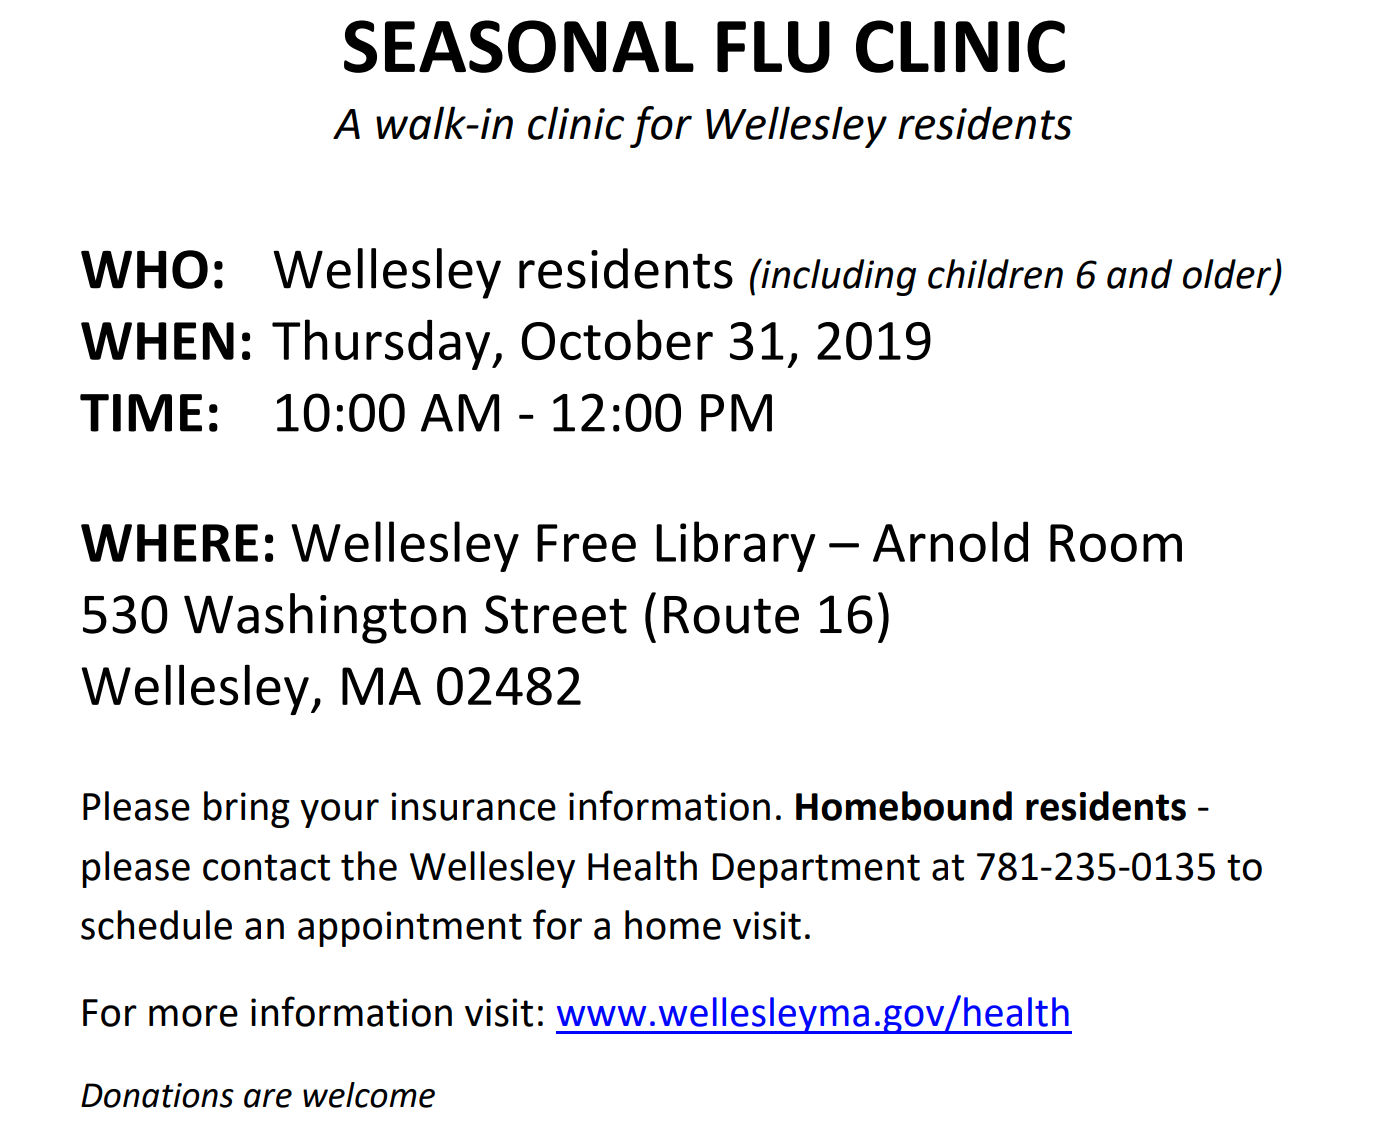 Wellesley flu clinic